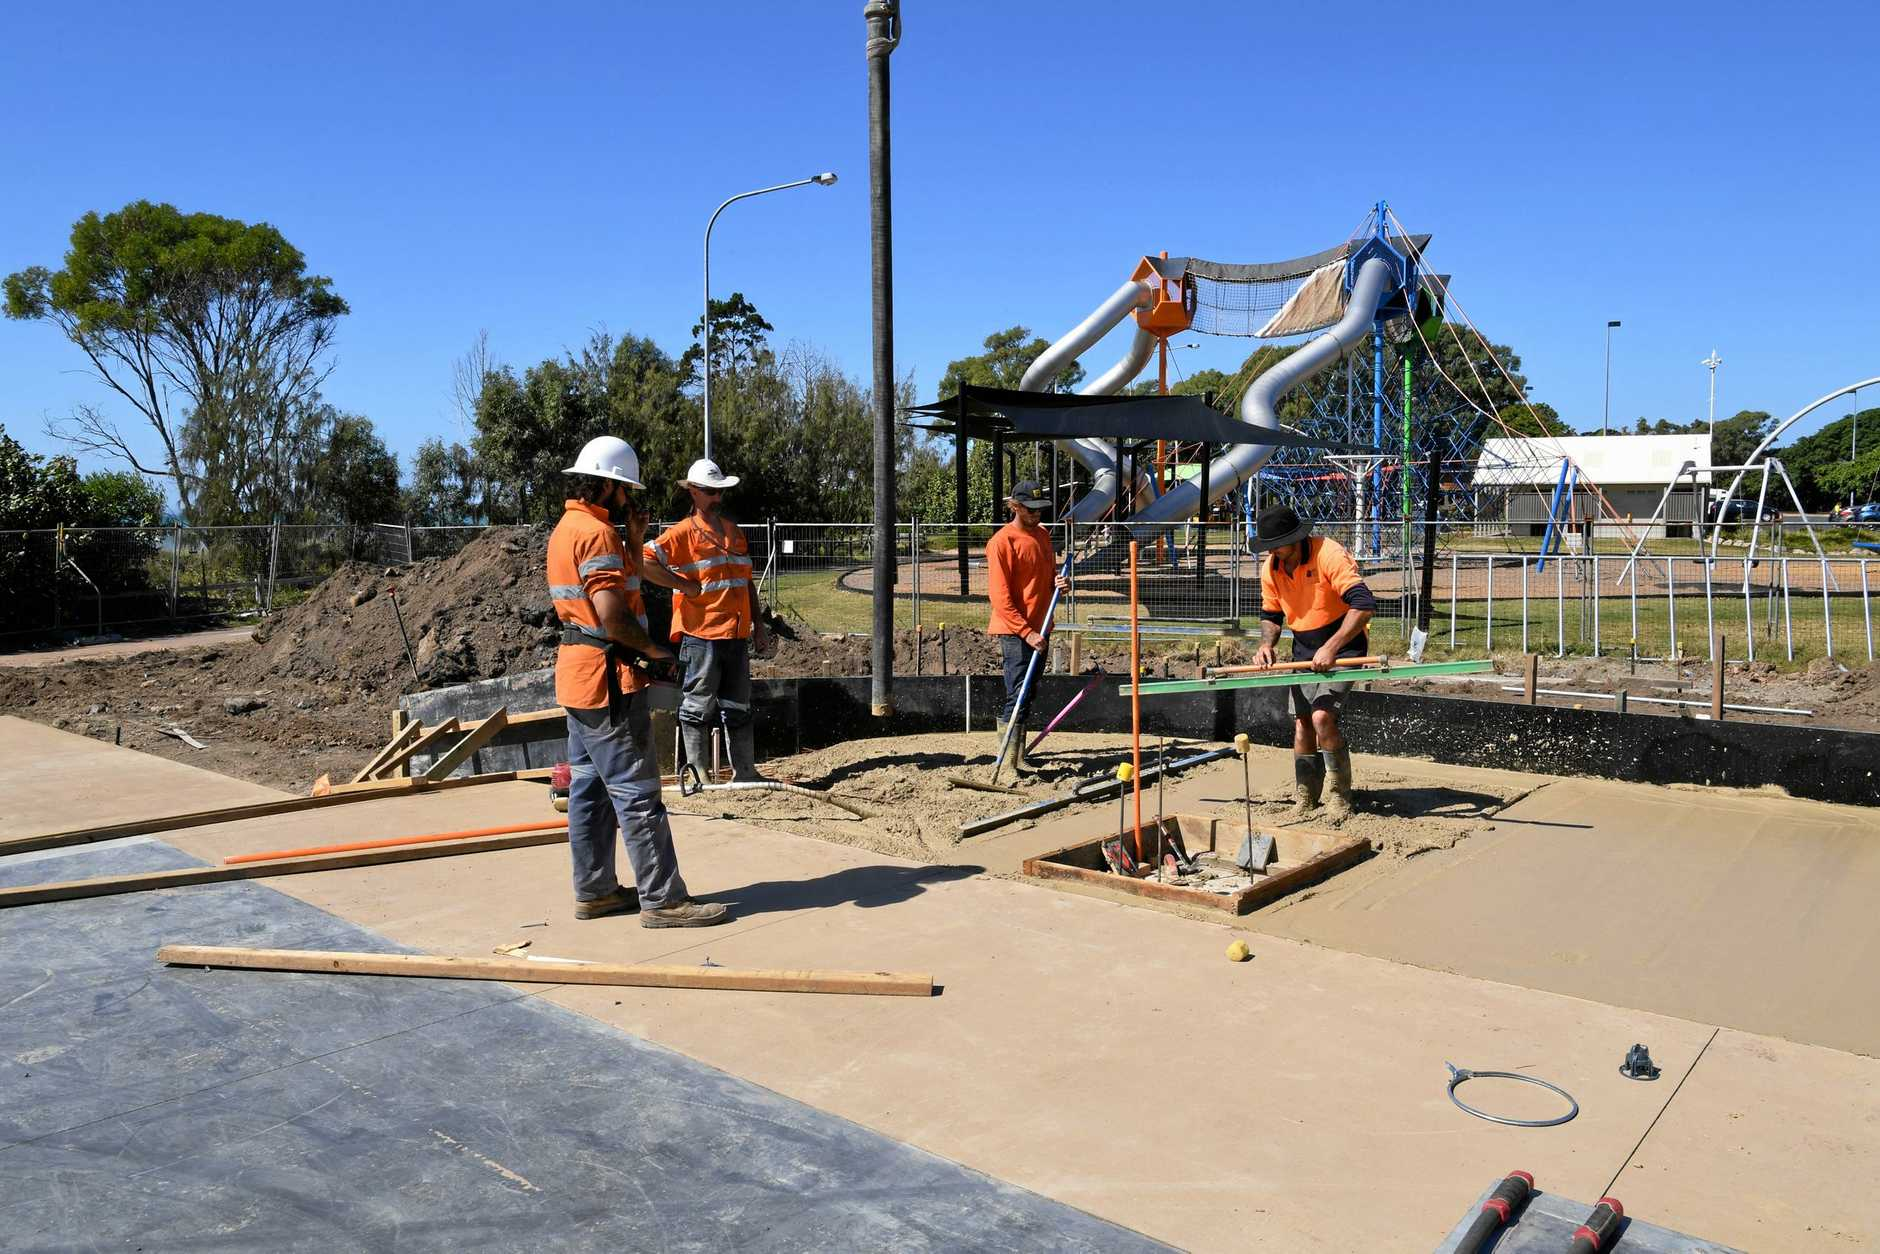 Construction workers putting the final touches on the skate park ahead of its opening date next month.